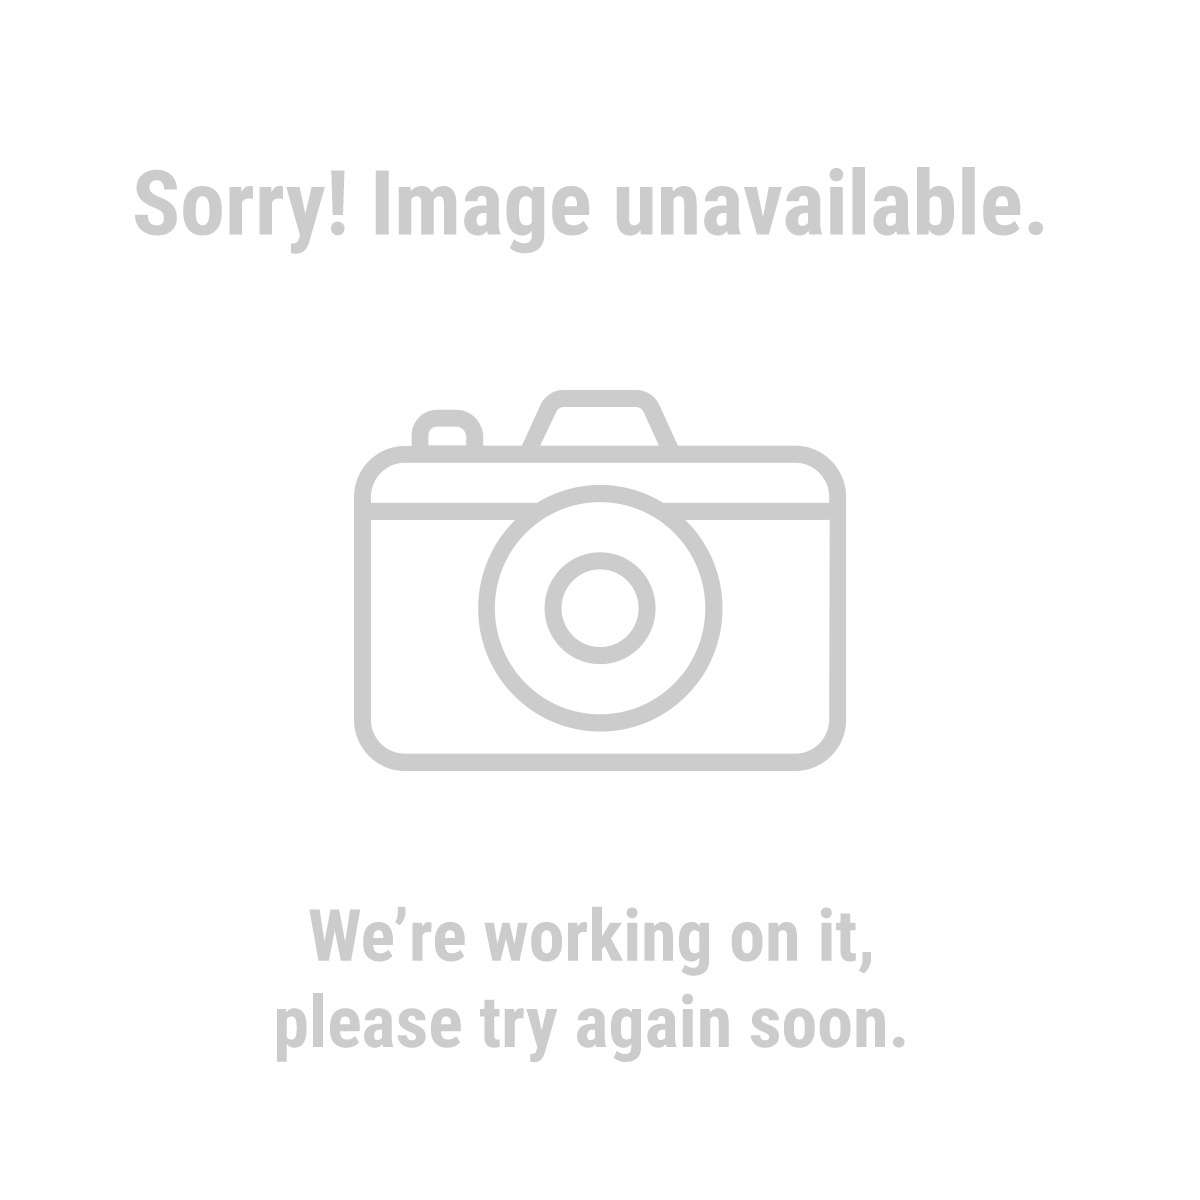 Warrior 68116 9 Piece Carbide Grit Hole Saw Kit